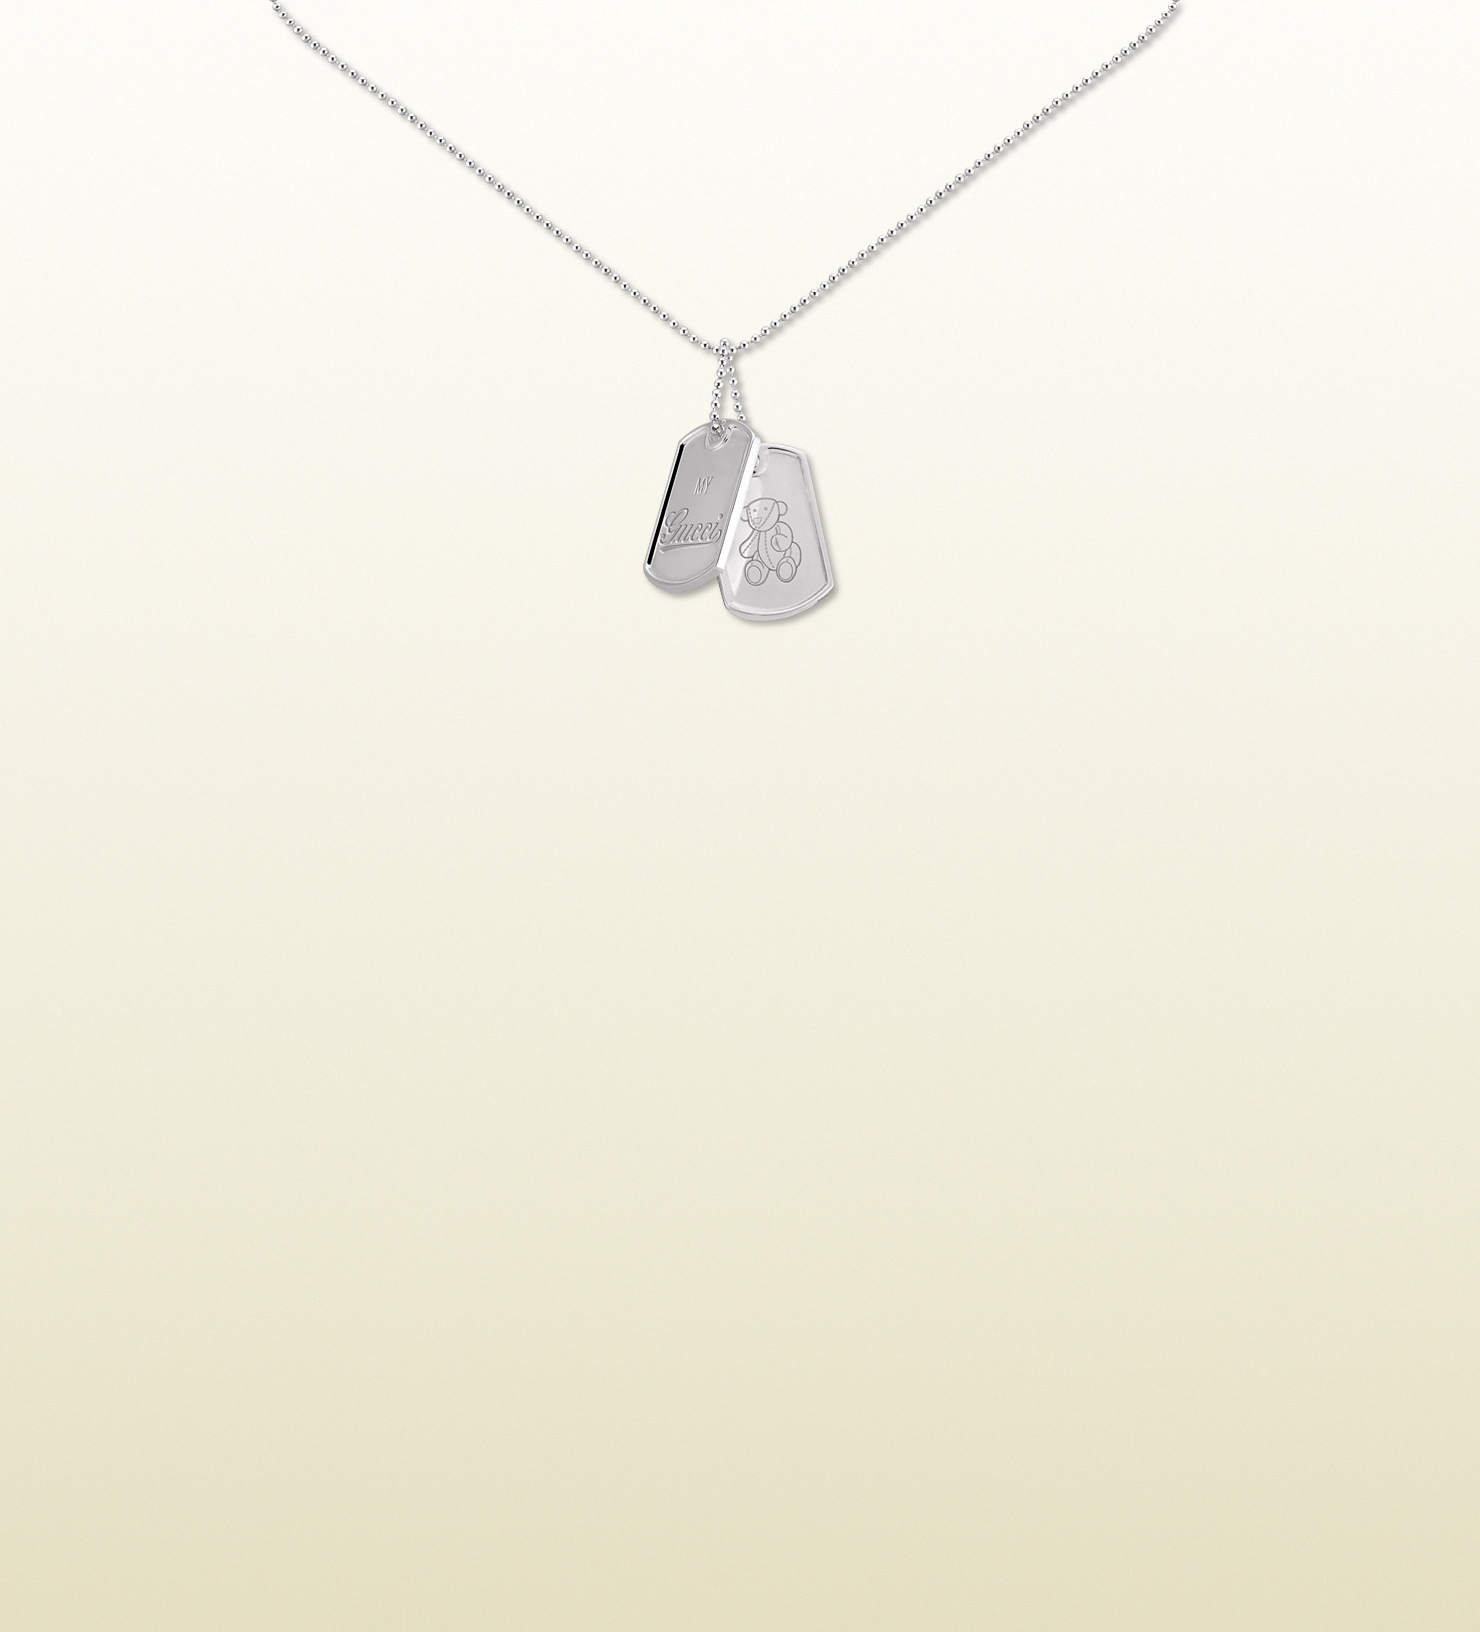 6e20726d7 Lyst - Gucci Necklace in Metallic